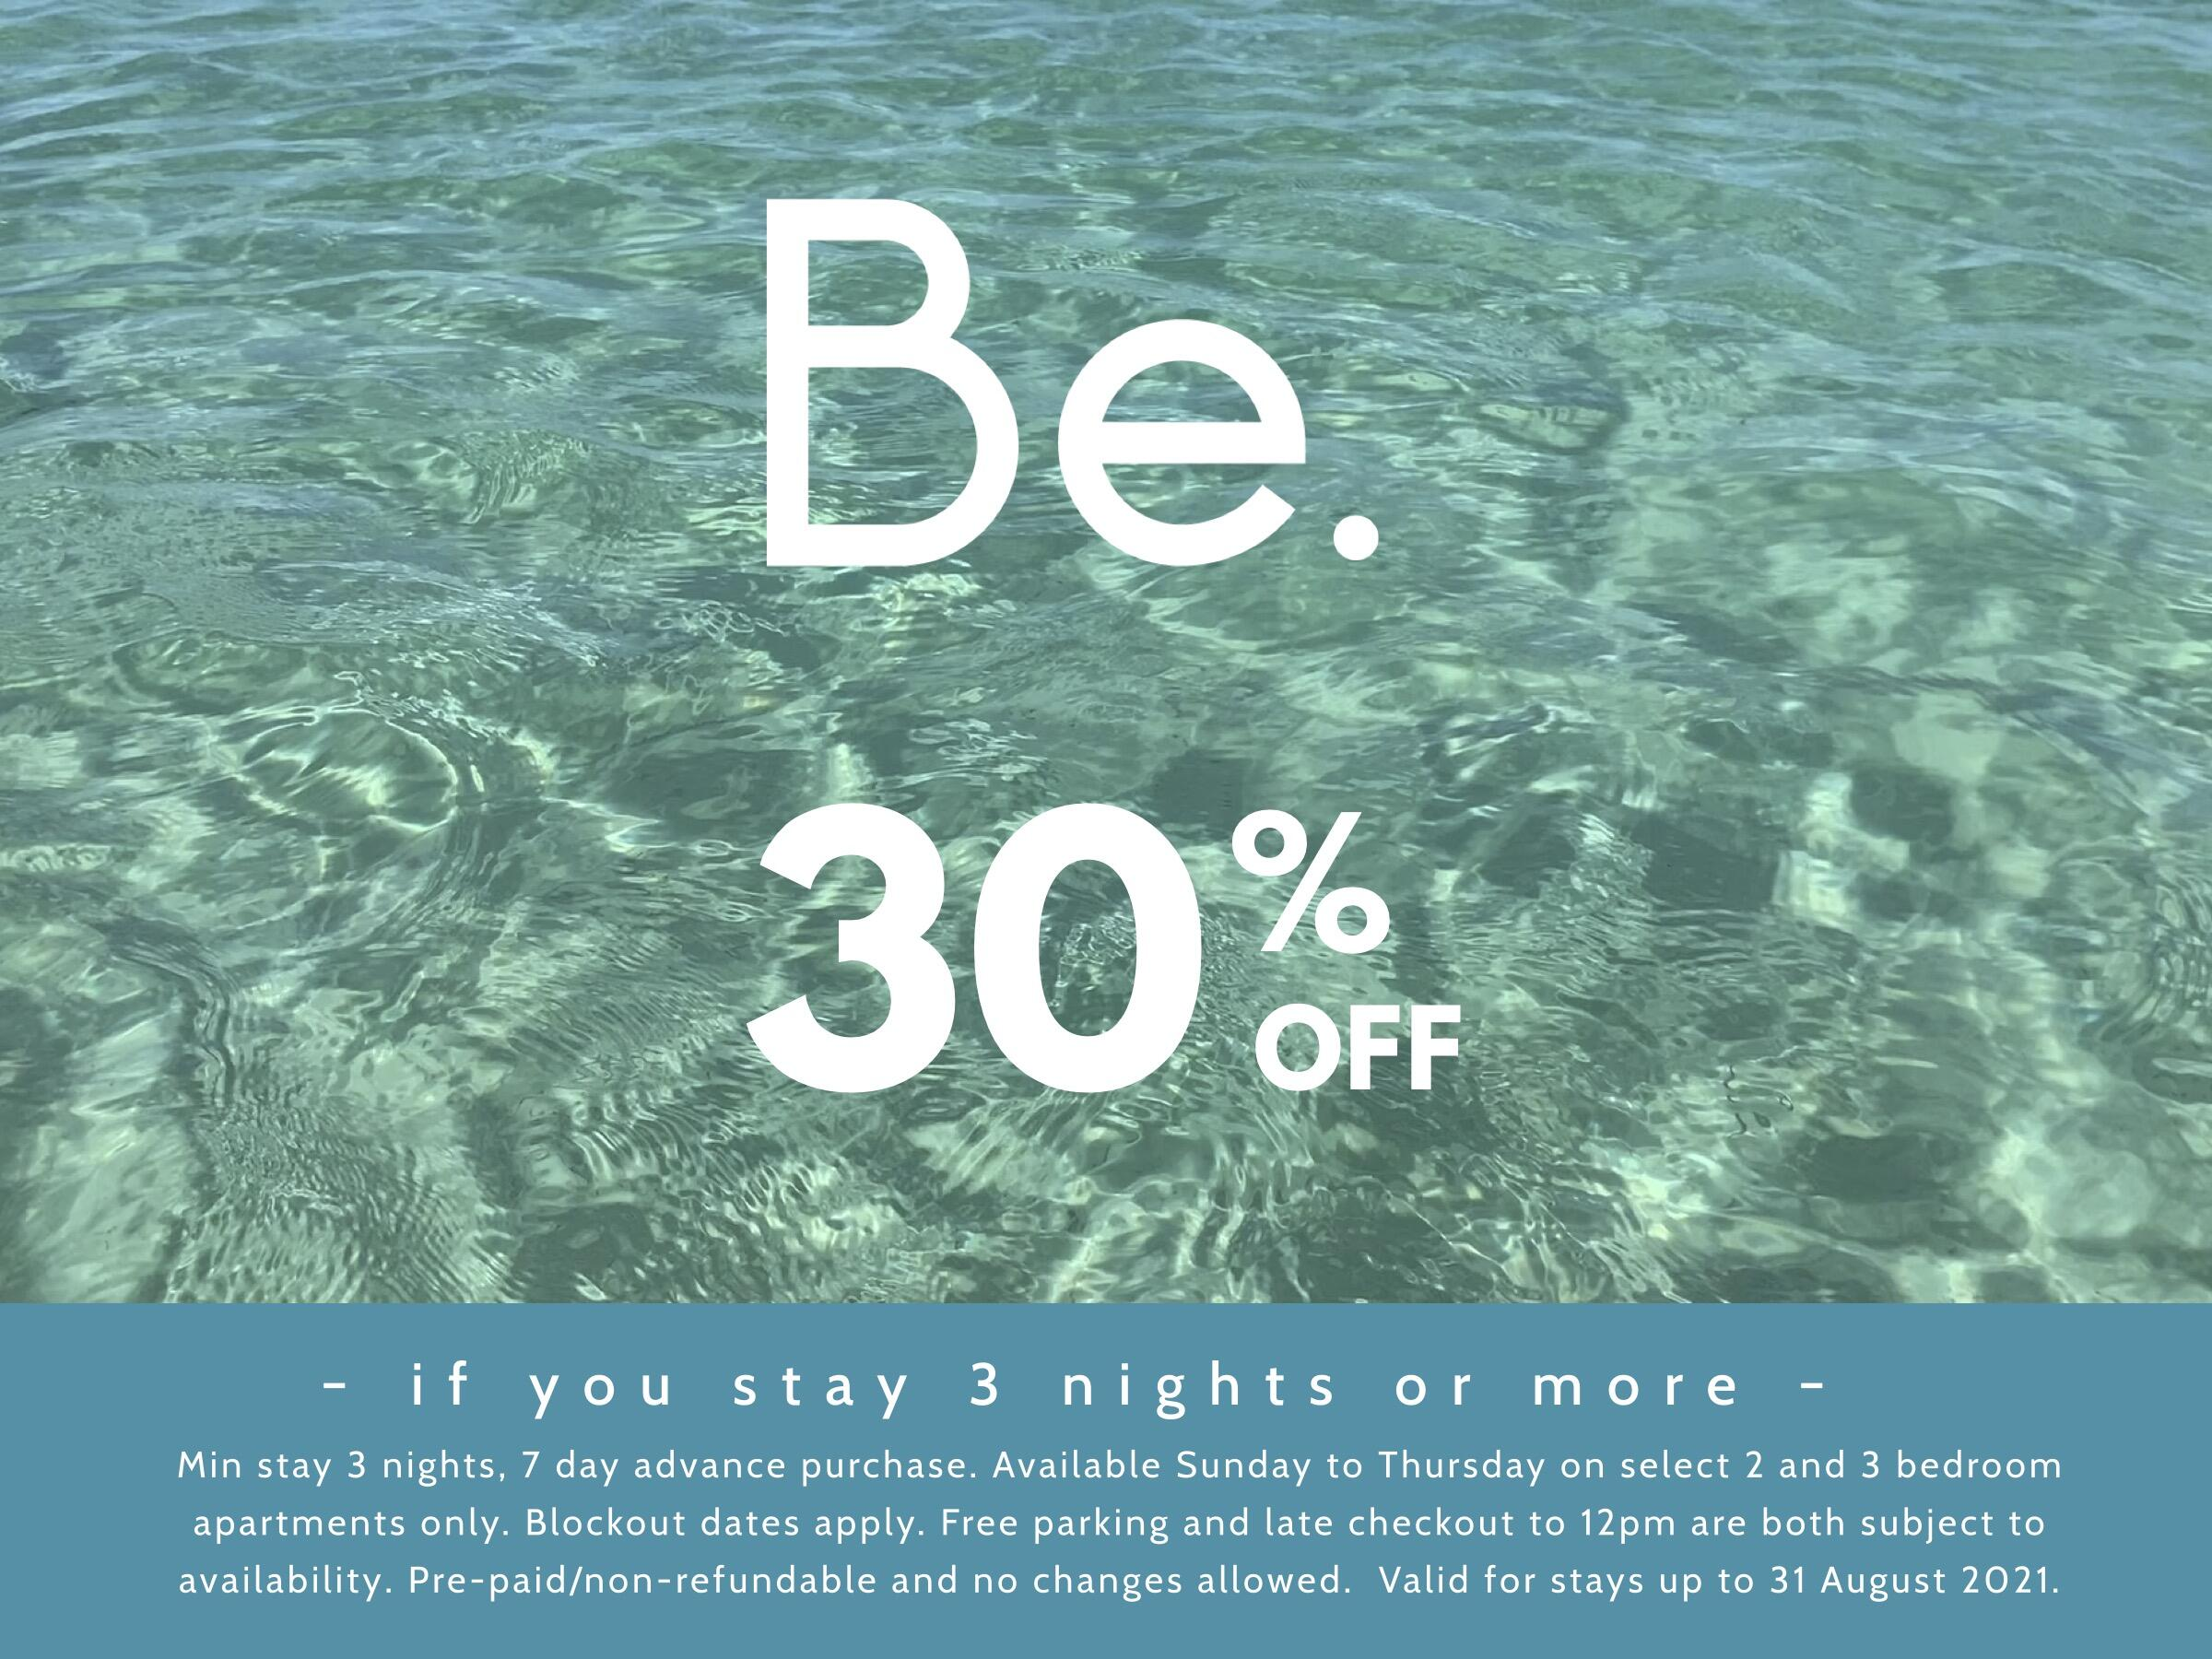 Be 30% off offer poster